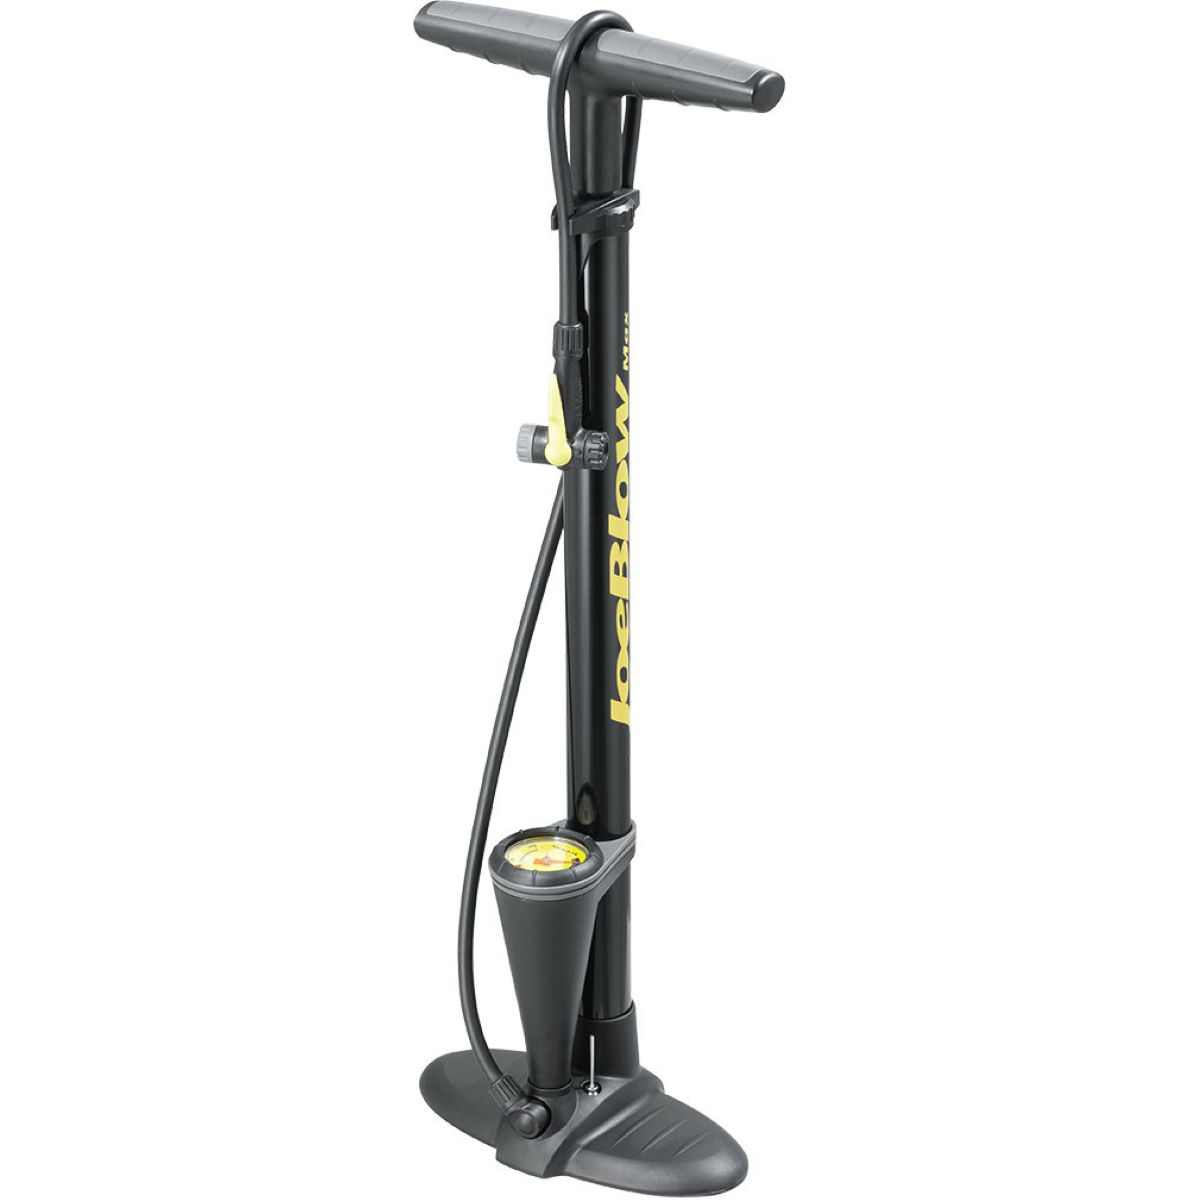 Topeak Joe Blow Max II Track Pump